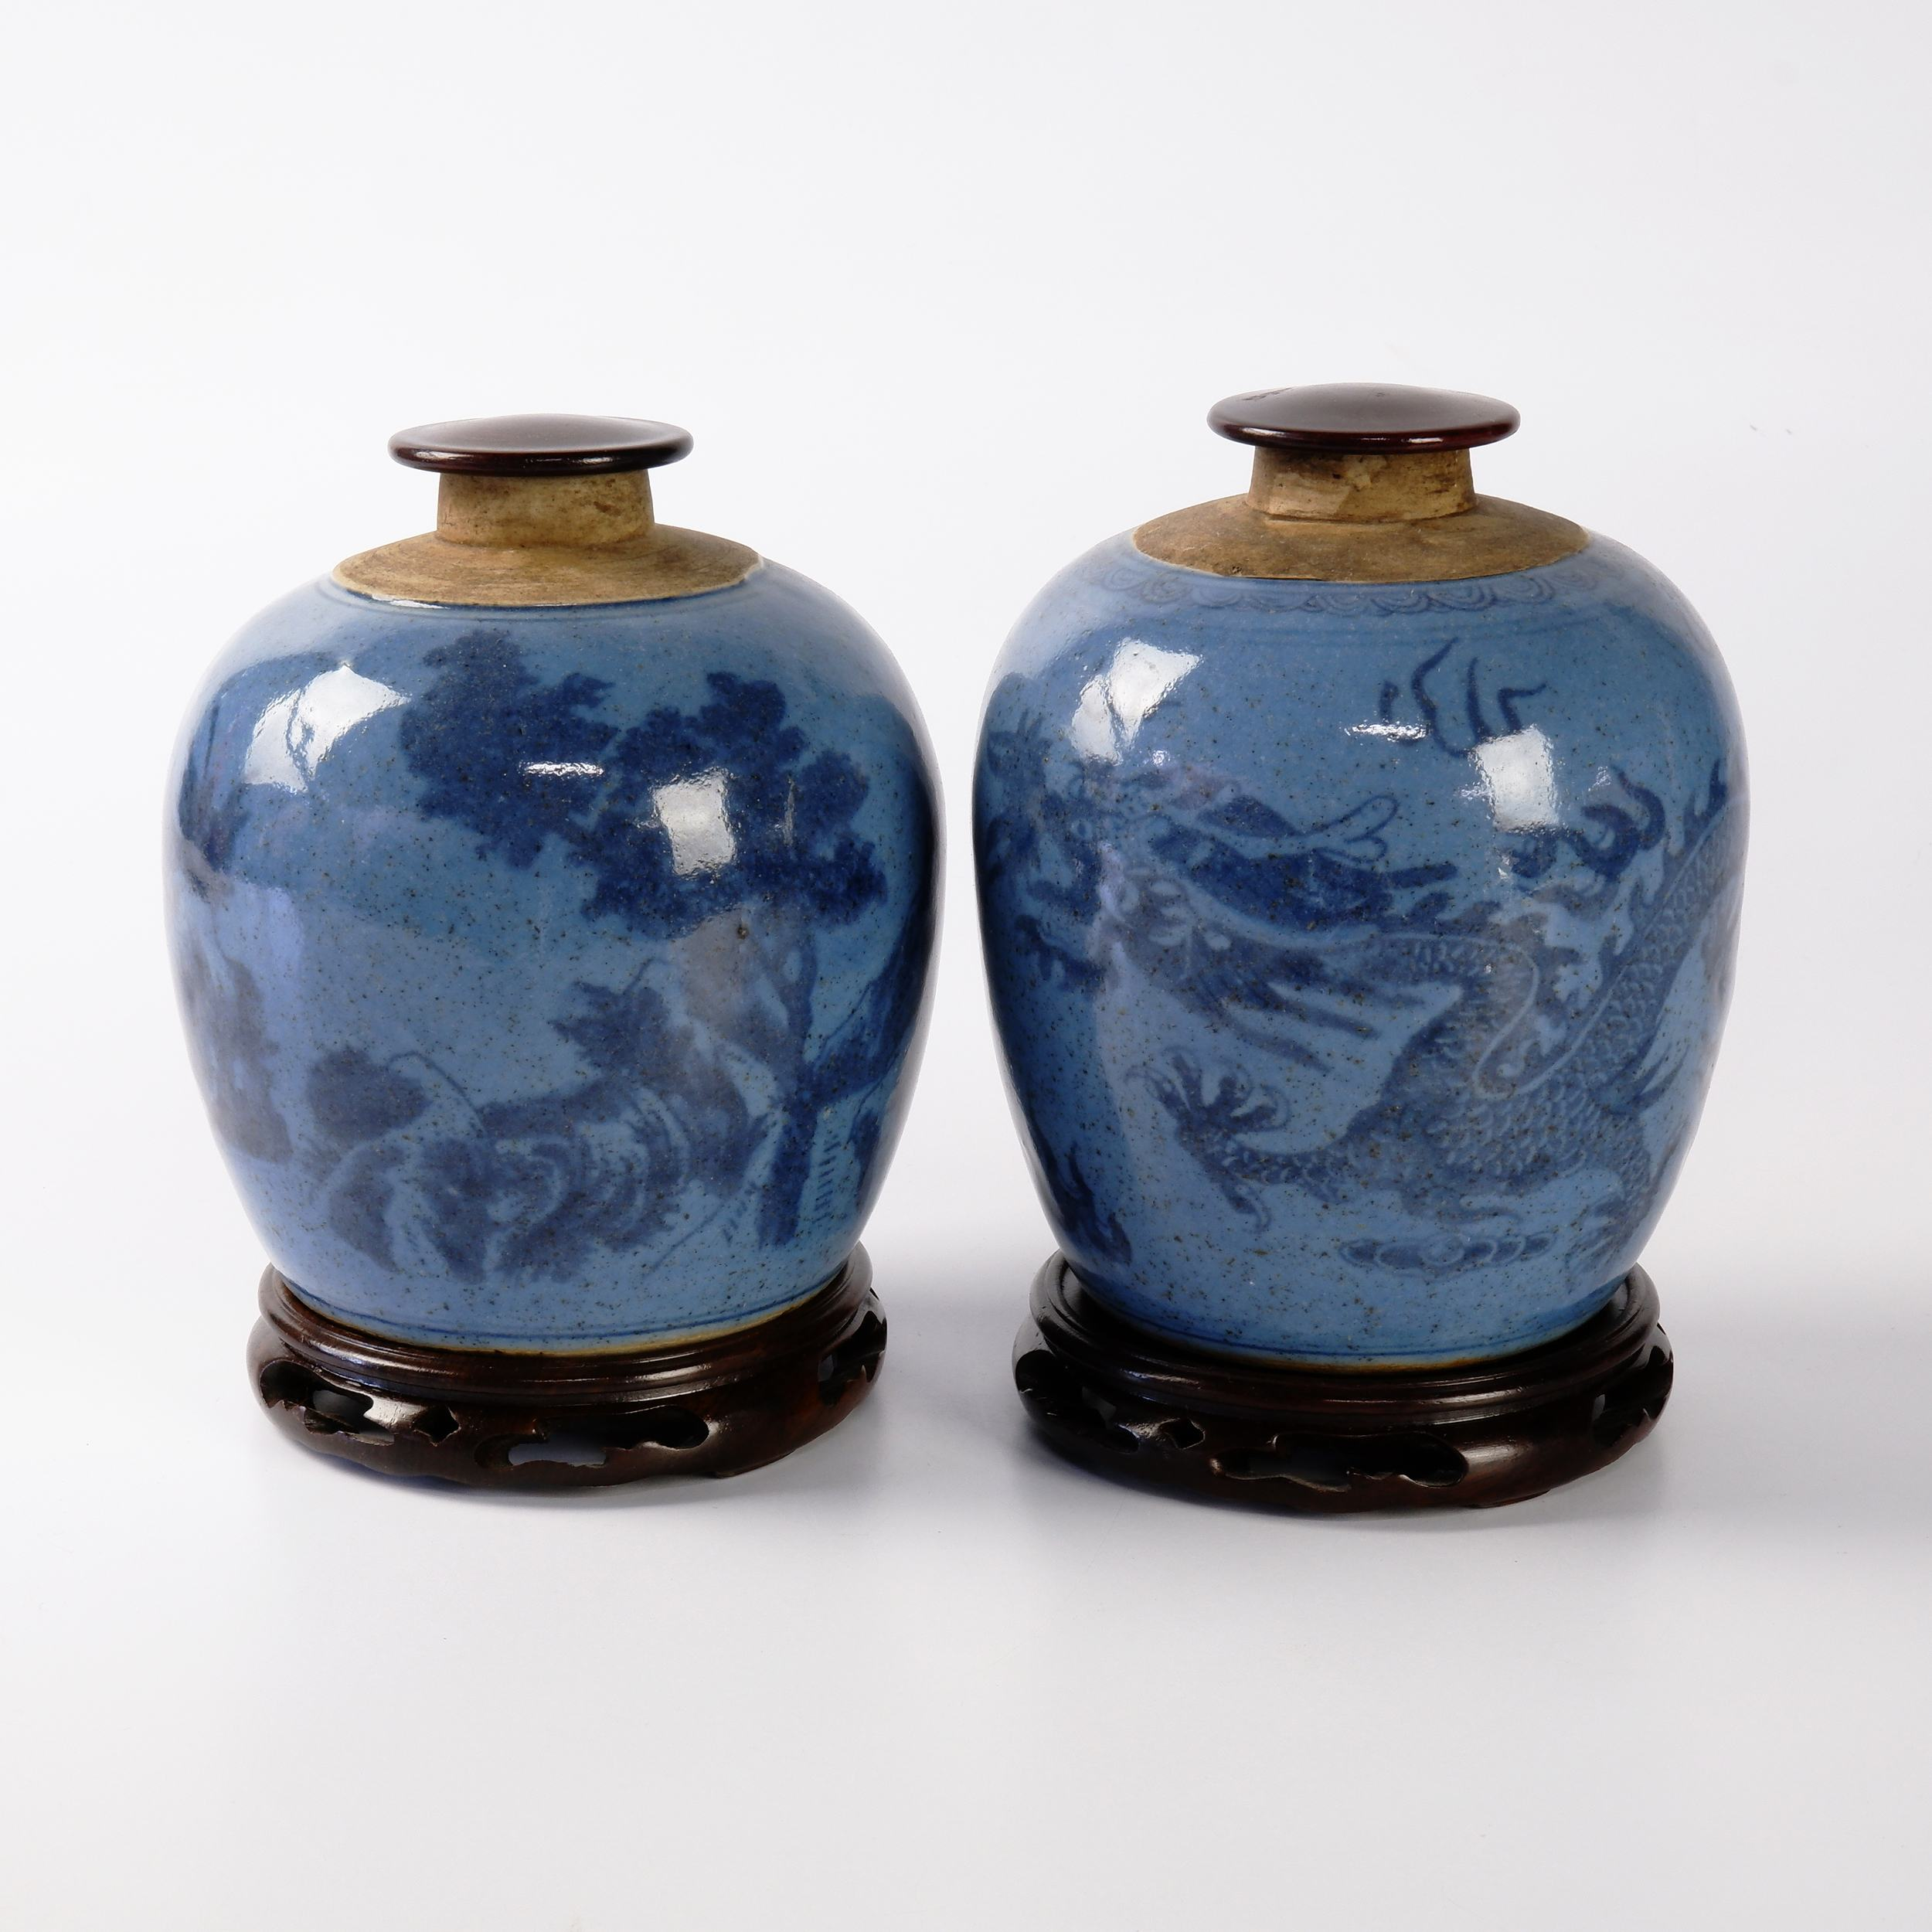 'Pair of Antique Chinese Pale Blue Ground Ginger Jars Decorated with Dragon in Clouds and Mountain Landscapes, 19th Century'